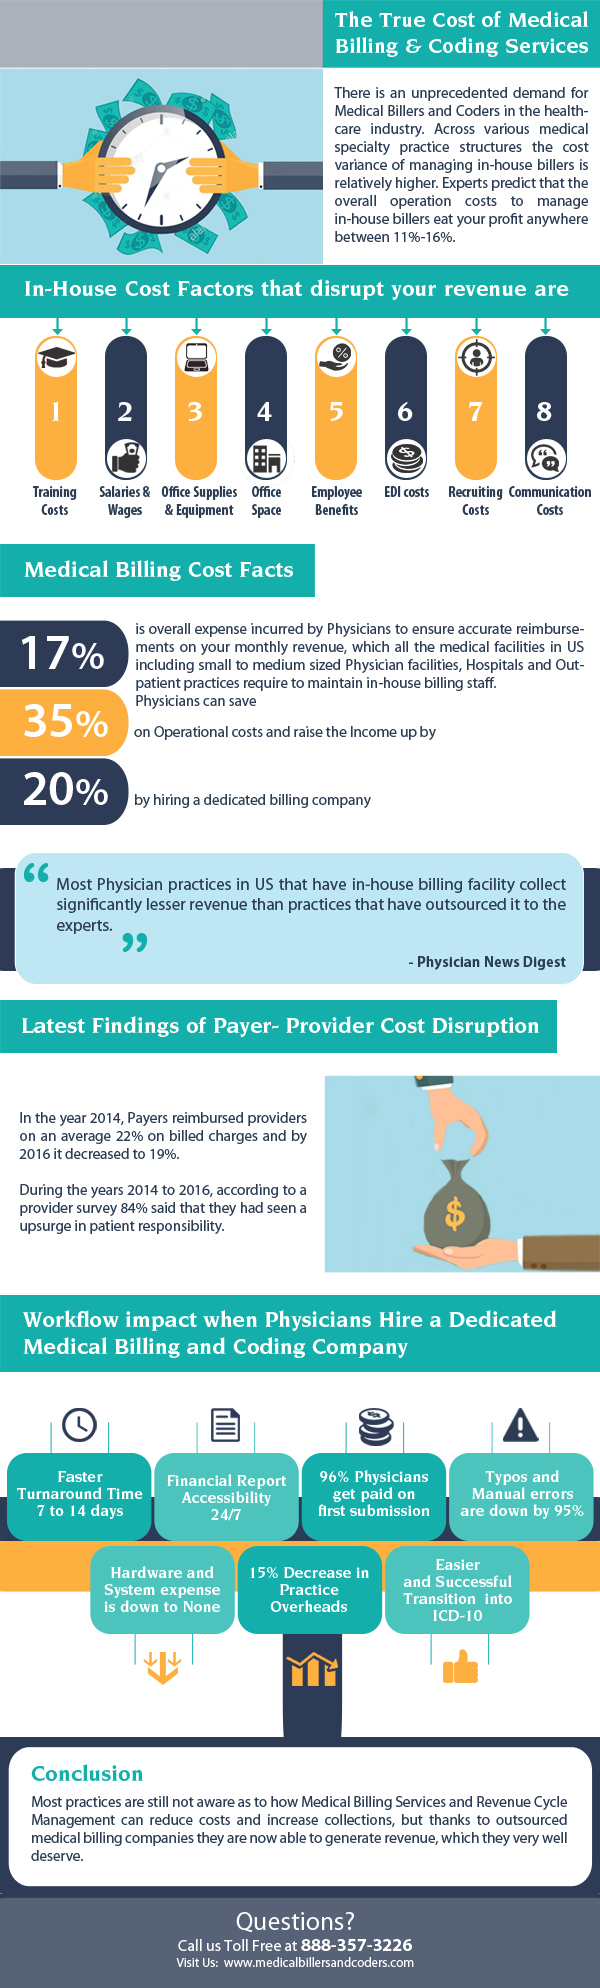 The True Cost of Medical Billing and Coding Services